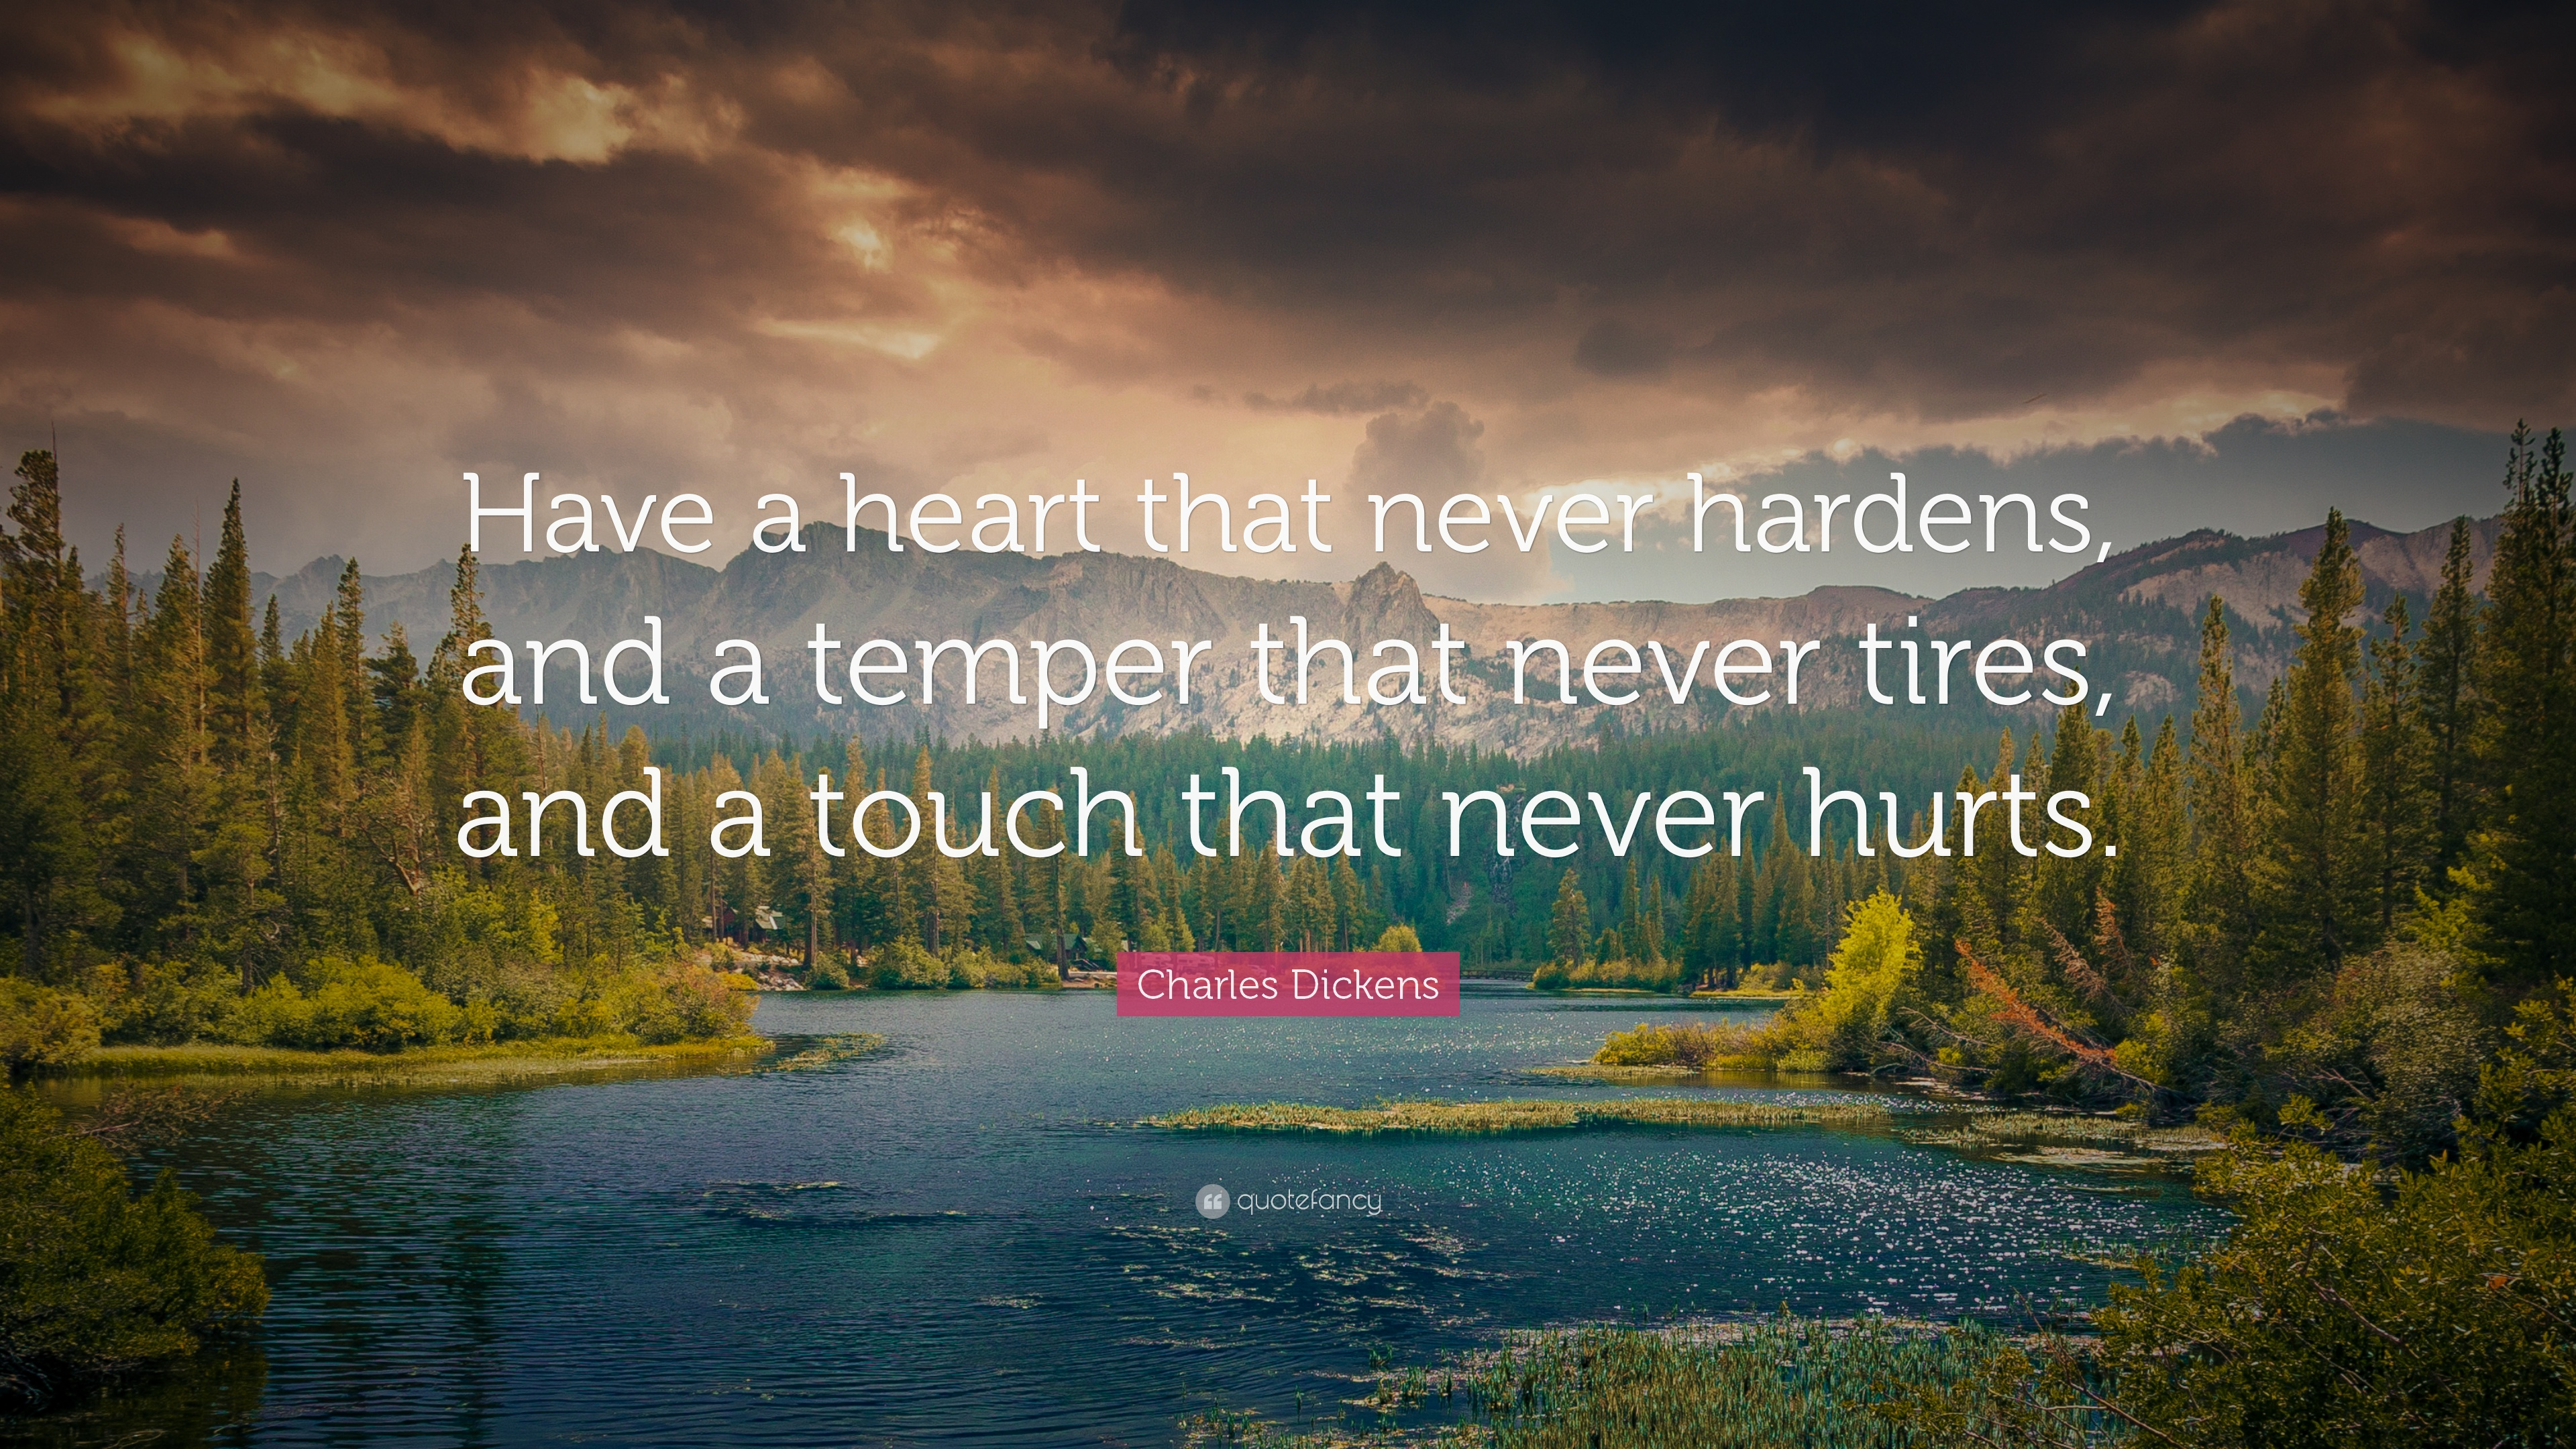 Wallpaper Quotes Love Hurts Charles Dickens Quote Have A Heart That Never Hardens